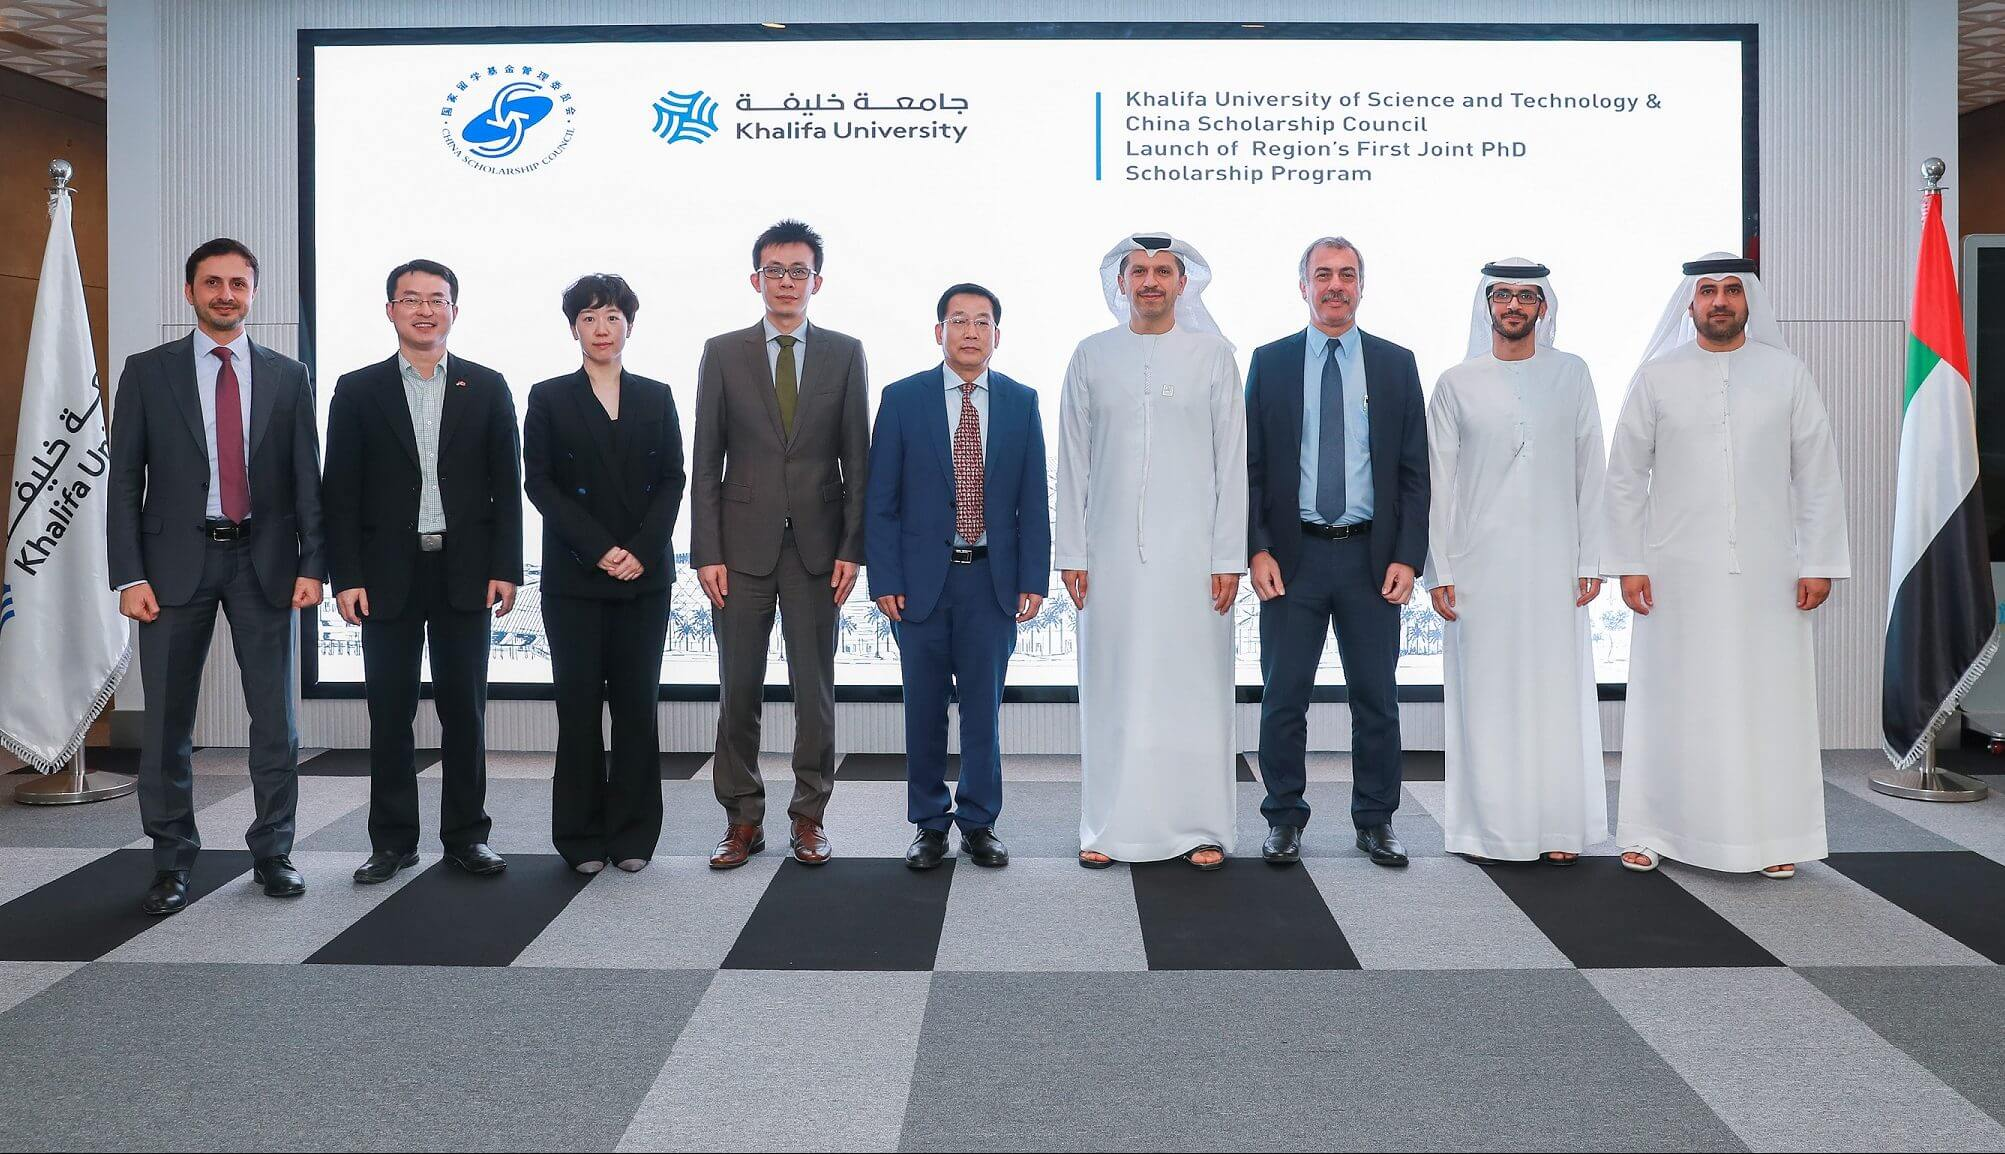 Khalifa University Launches Arab Region's First Joint PhD Scholarship Program with China's CSC